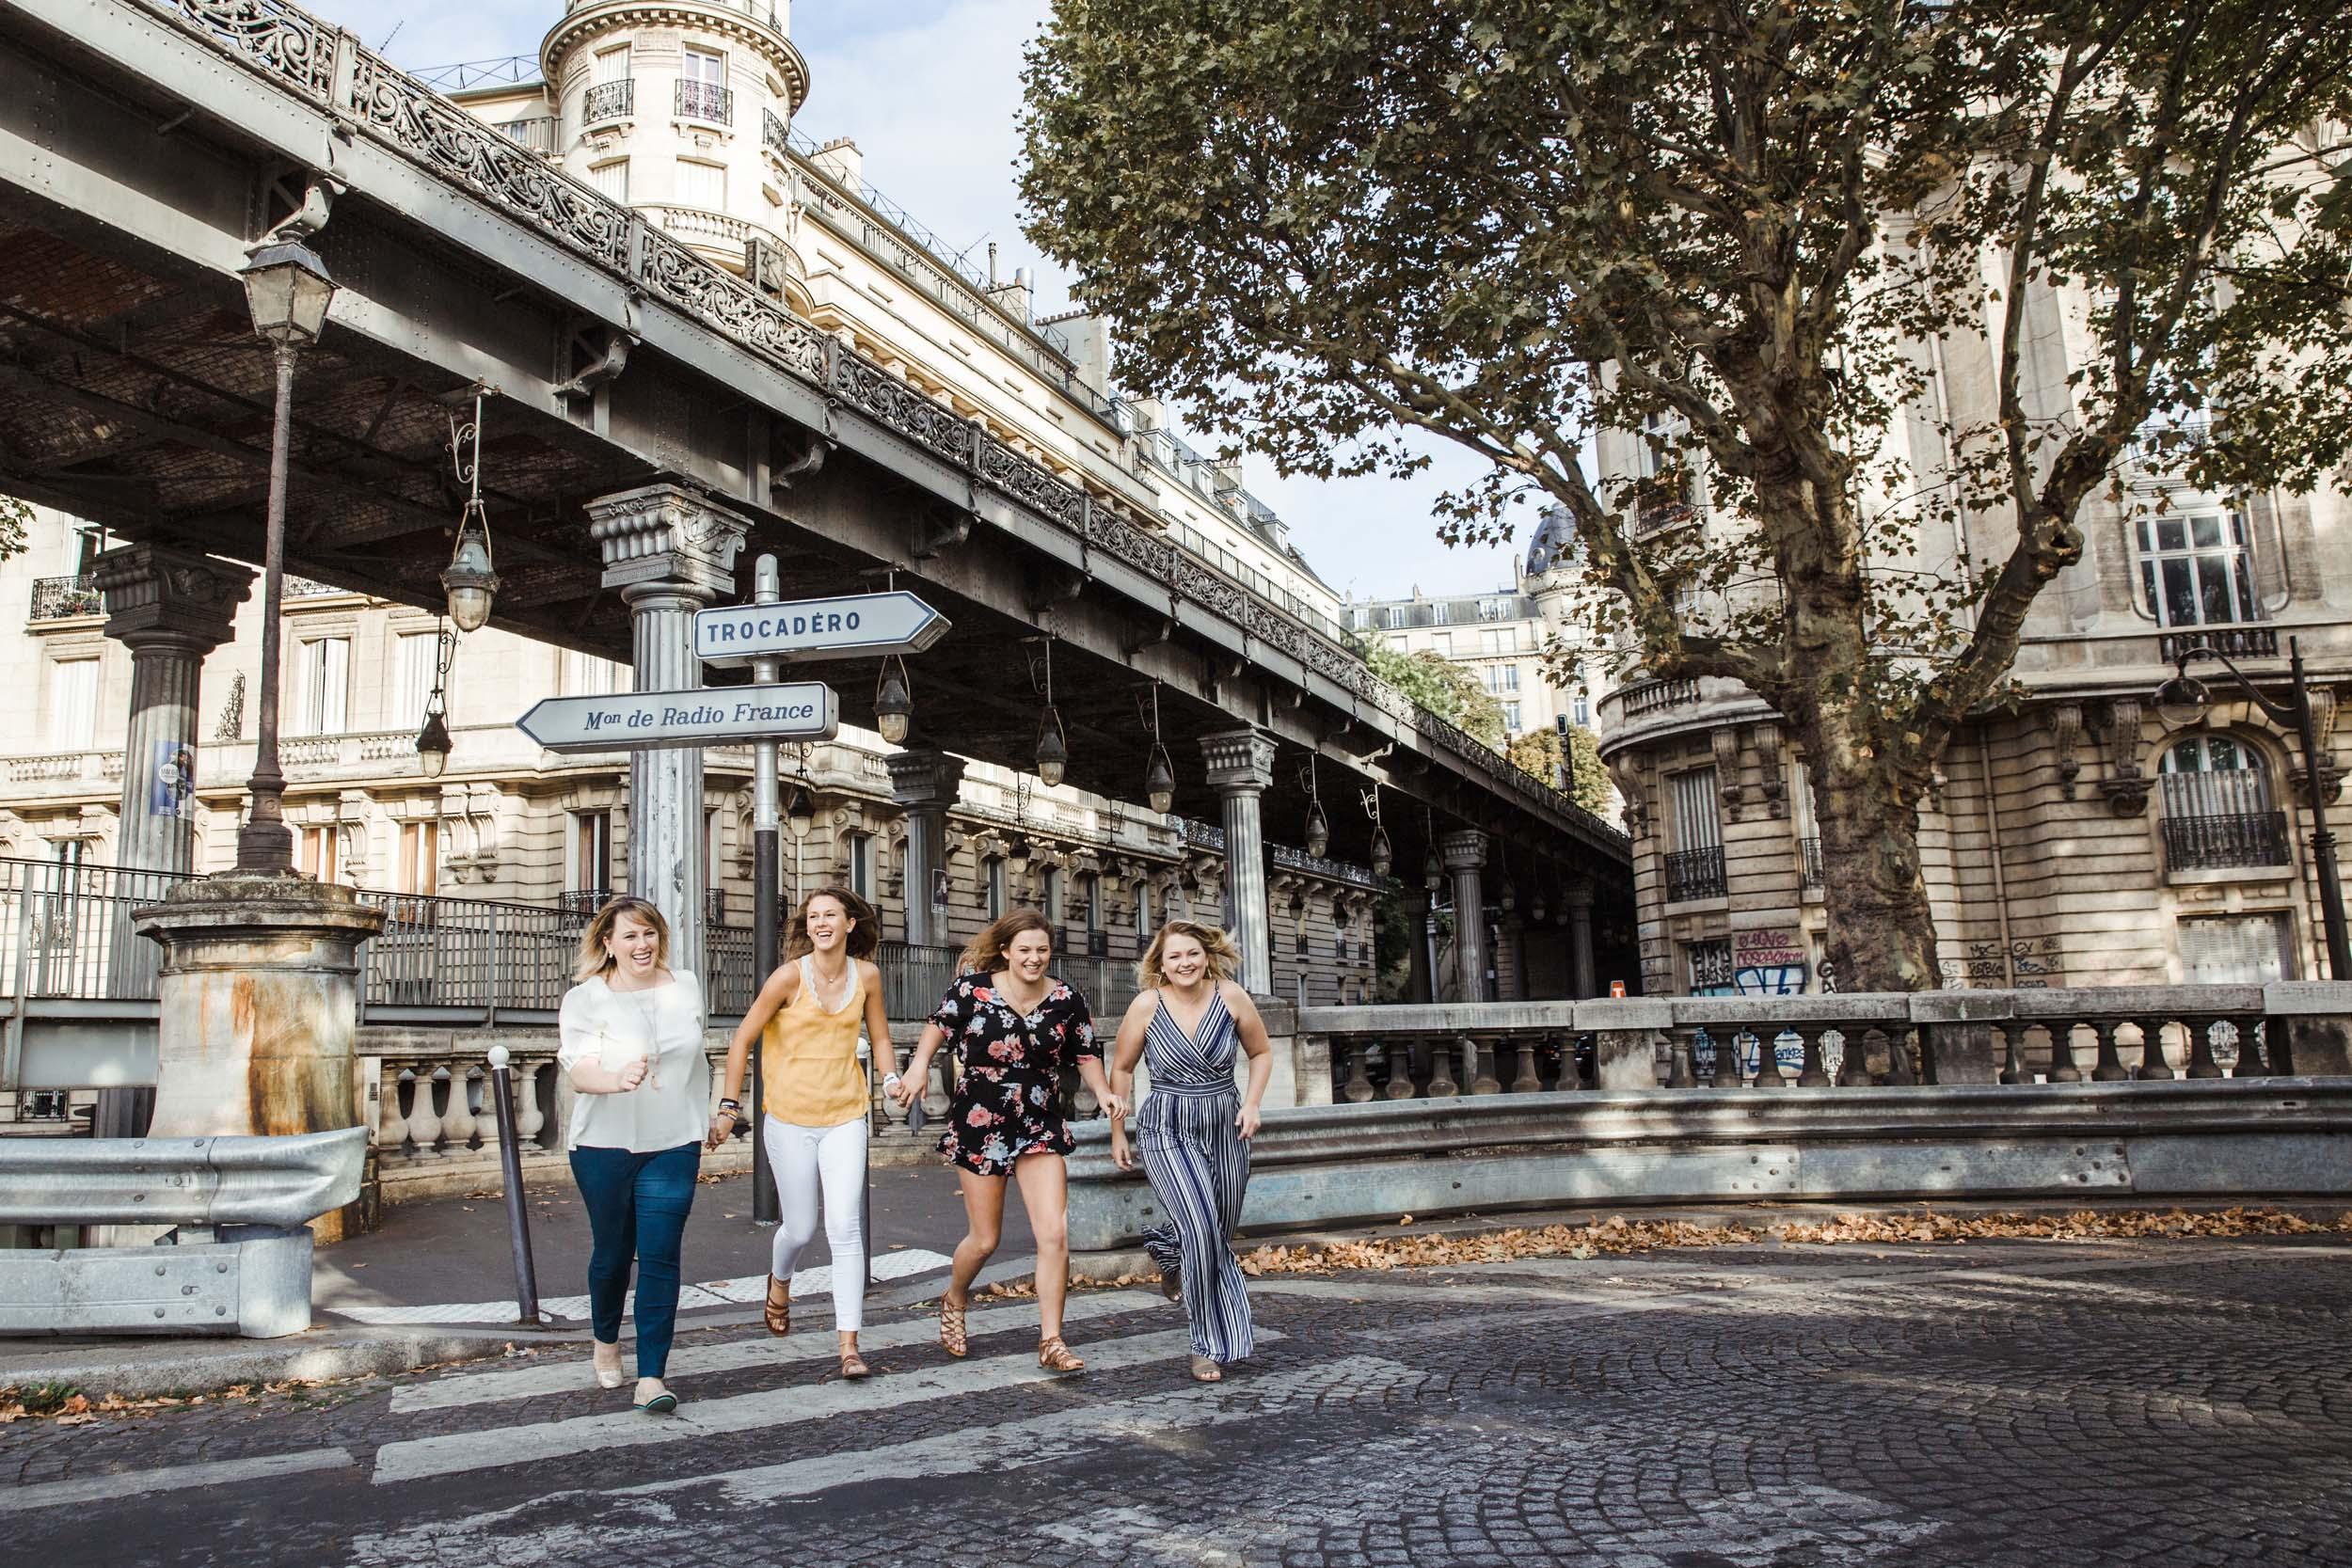 Sisters Bond Over the Magic of Travel in Paris